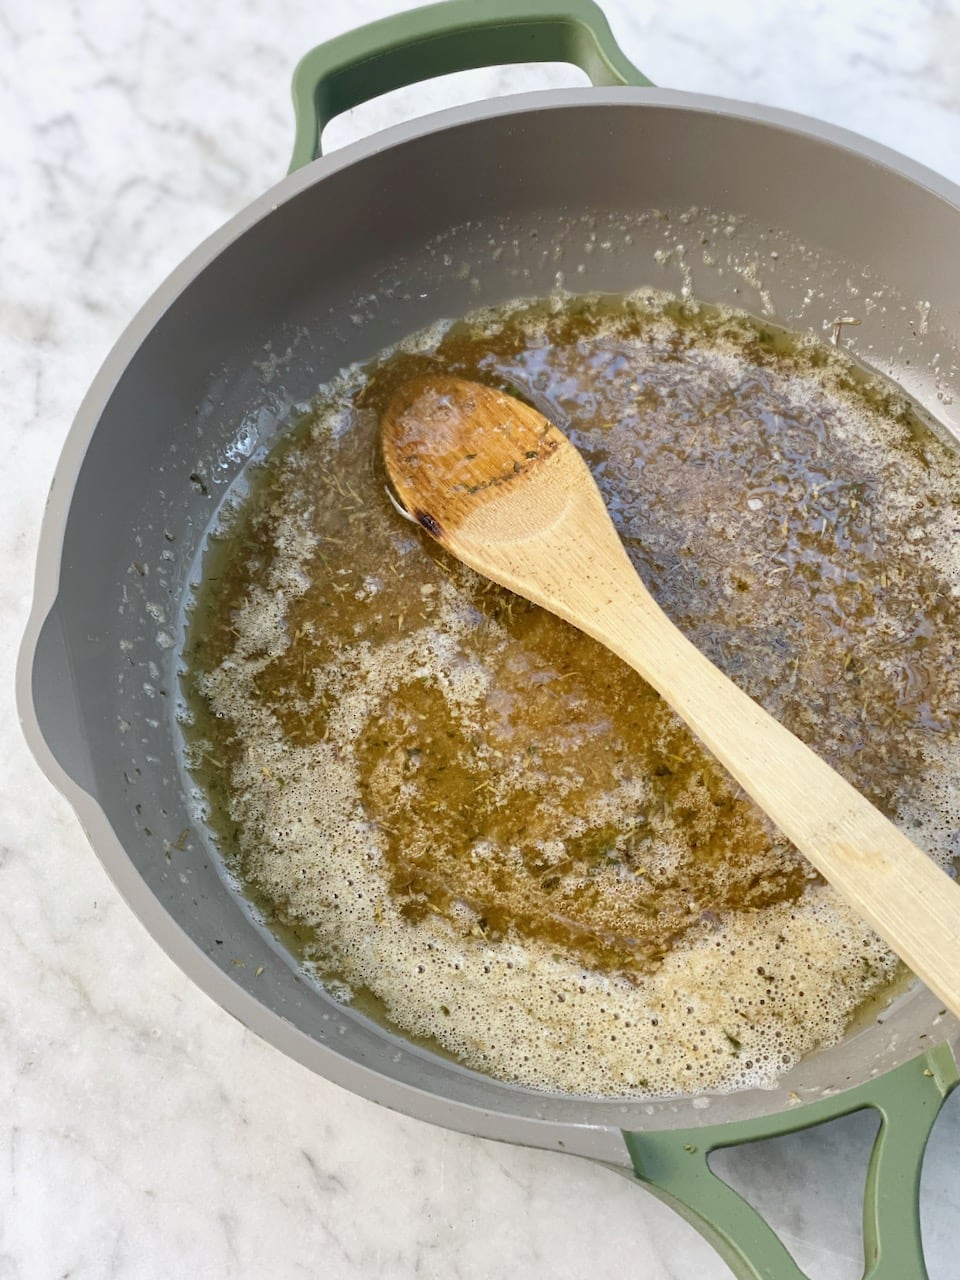 butter and brown sugar mixed with spices in a green frying pan.